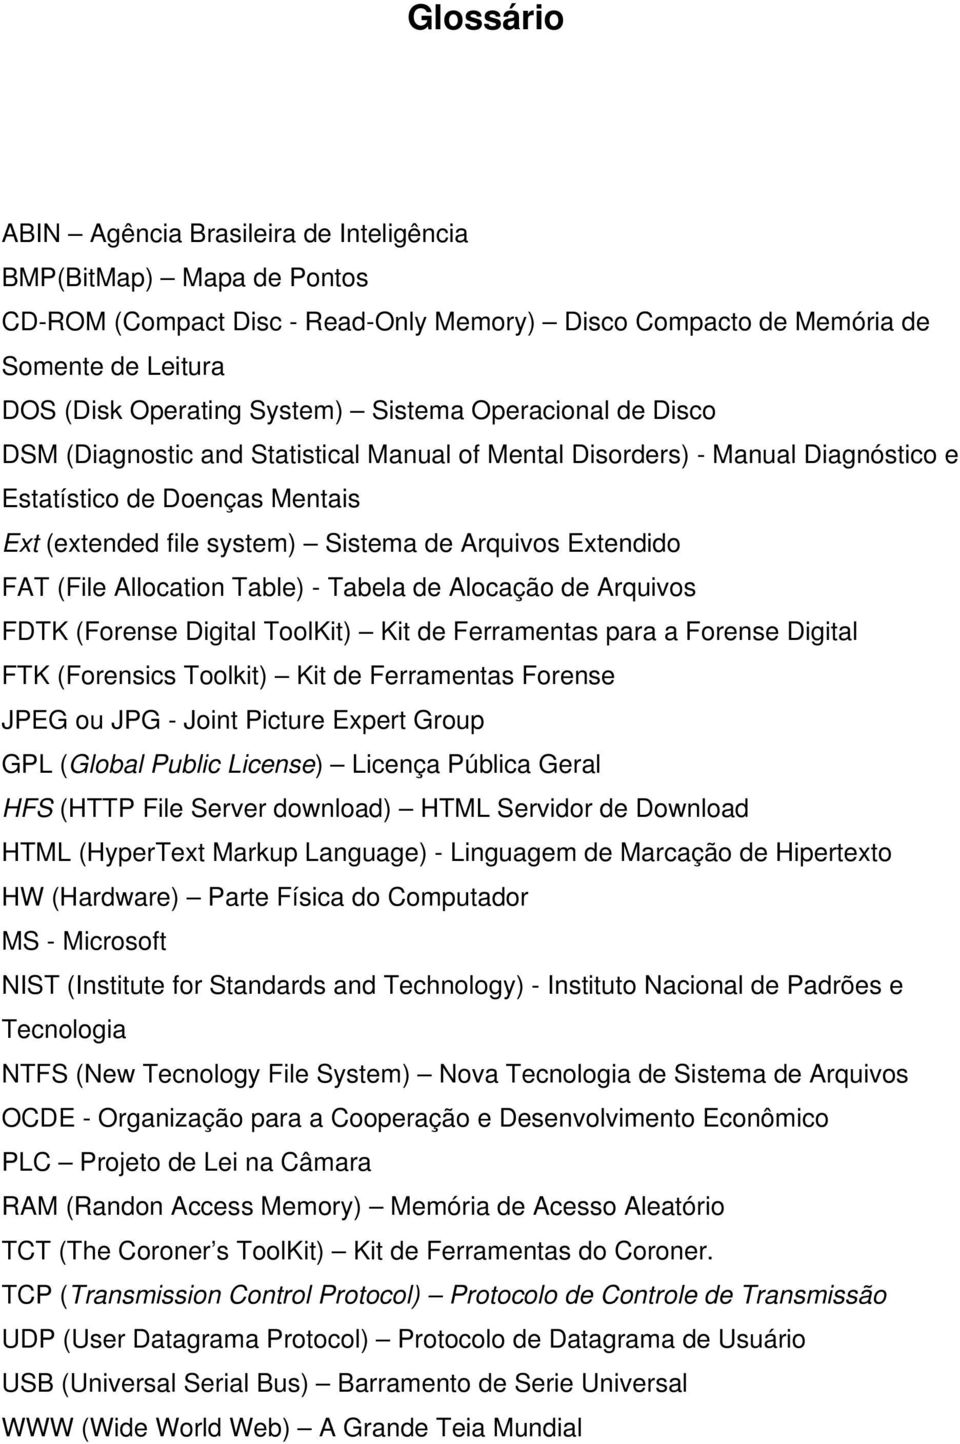 FAT (File Allocation Table) - Tabela de Alocação de Arquivos FDTK (Forense Digital ToolKit) Kit de Ferramentas para a Forense Digital FTK (Forensics Toolkit) Kit de Ferramentas Forense JPEG ou JPG -